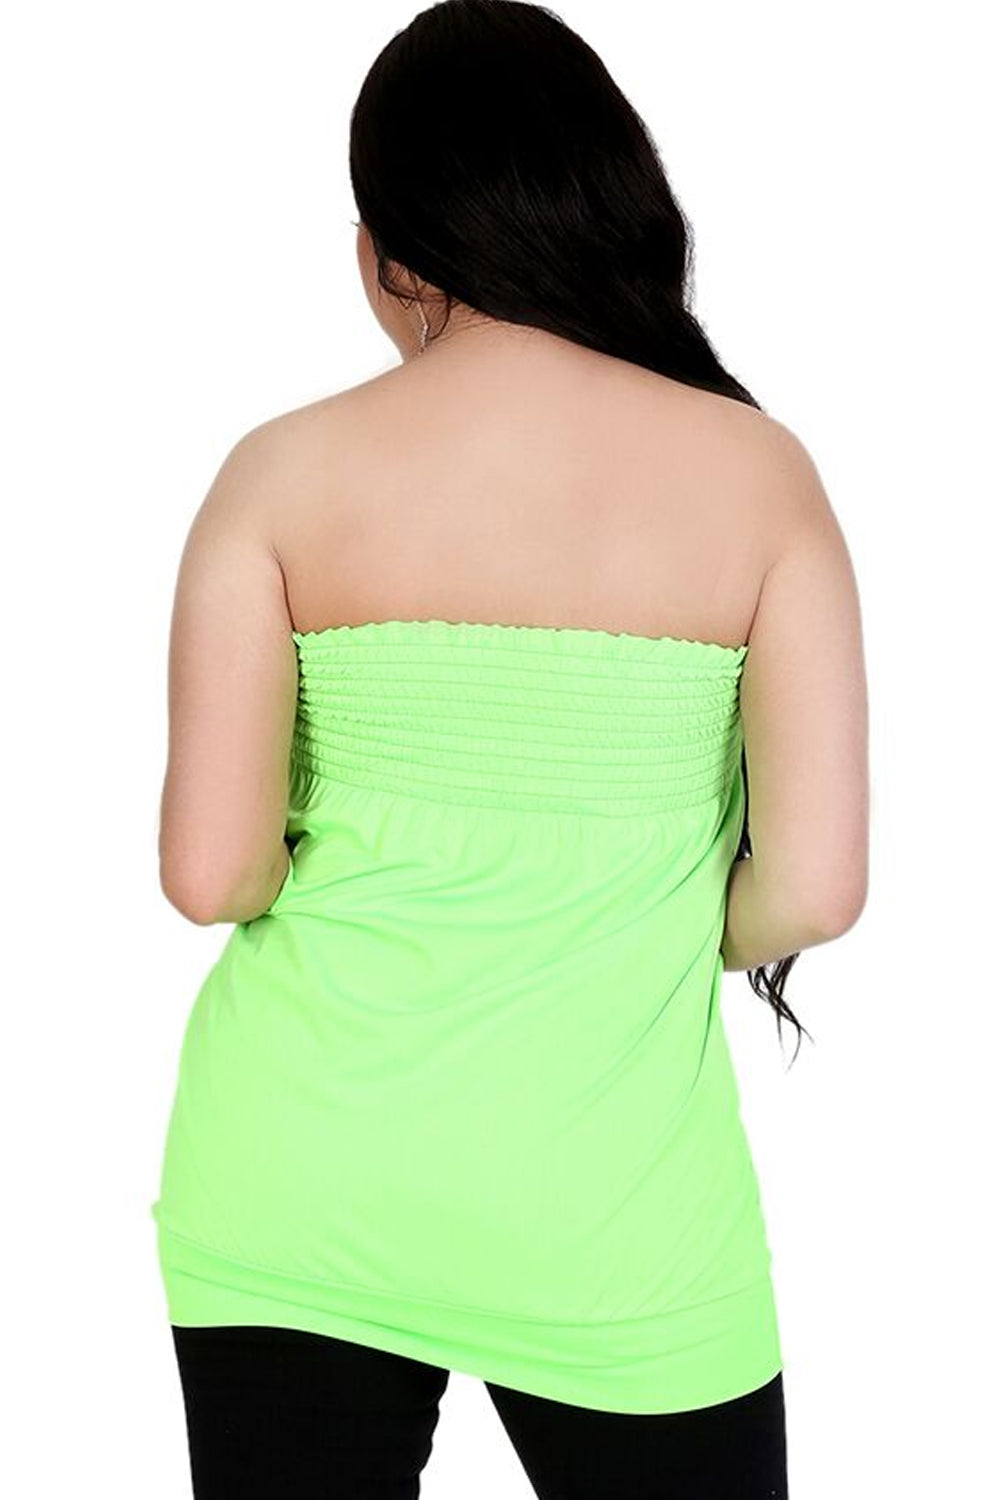 Bardot Shirring Neon Green Slinky Top - bejealous-com